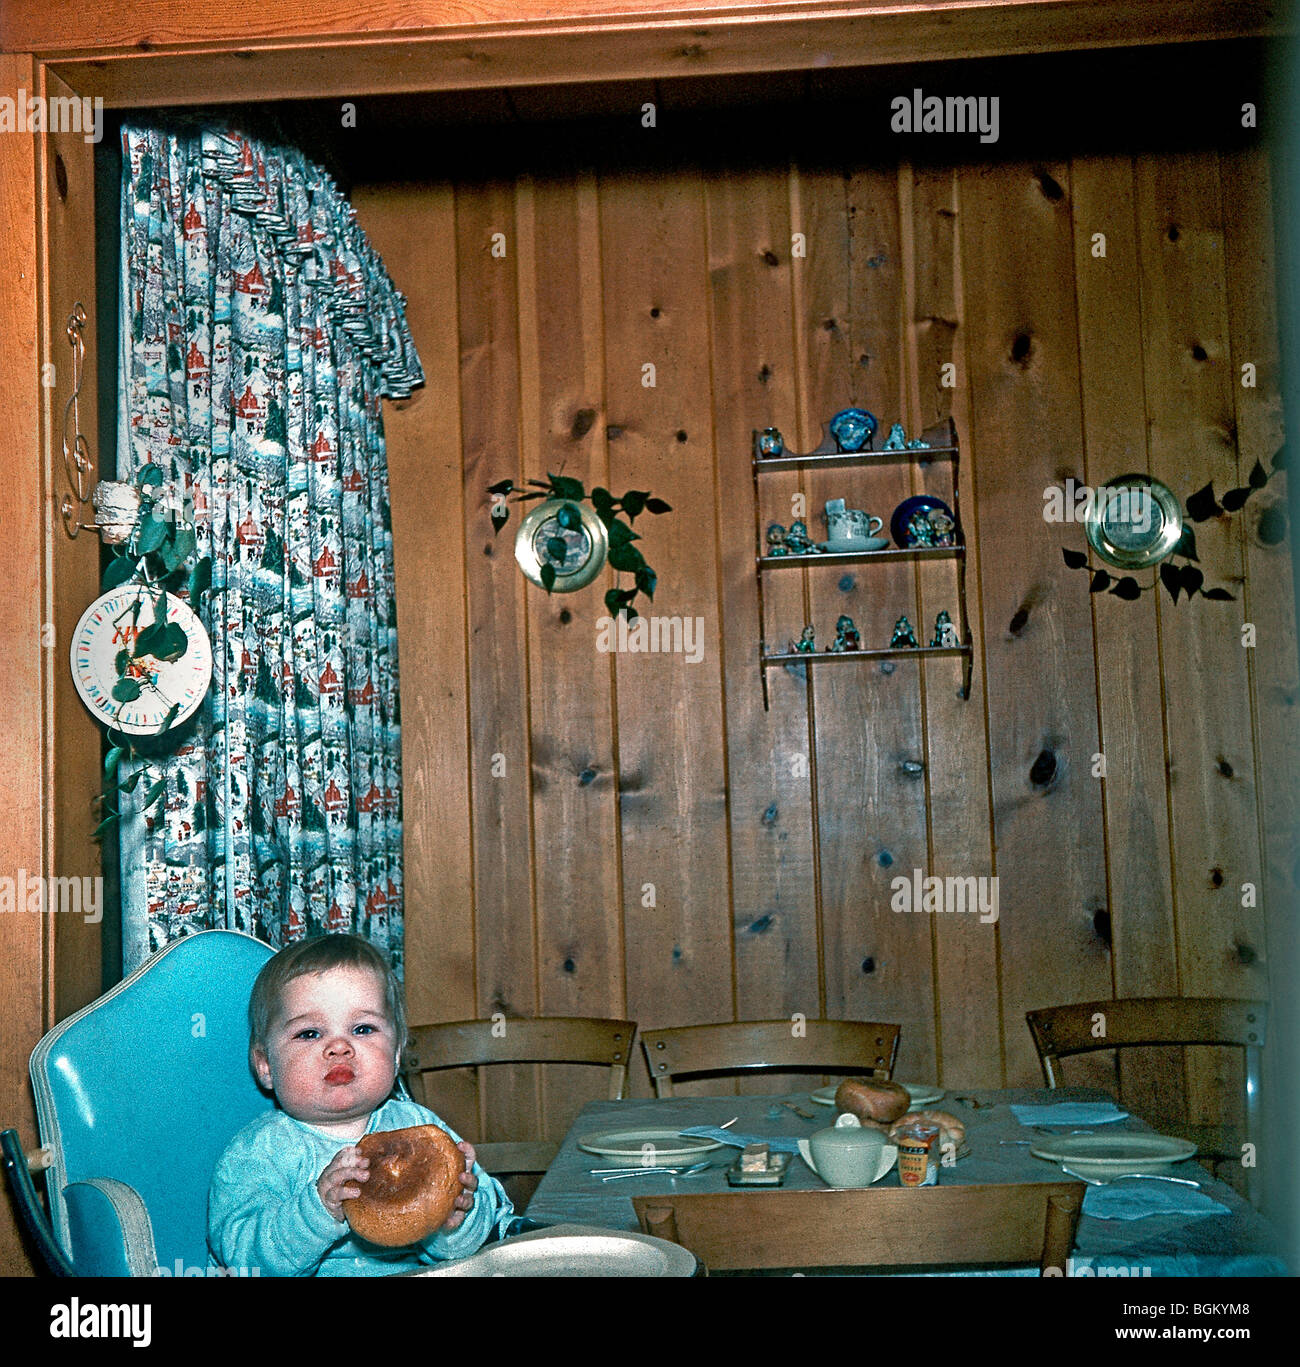 N.J, U.S.A., 1950's Family Photos, Young Girl Alone at Home in Kitchen, Suburbs.'Old Family Photos' - Stock Image